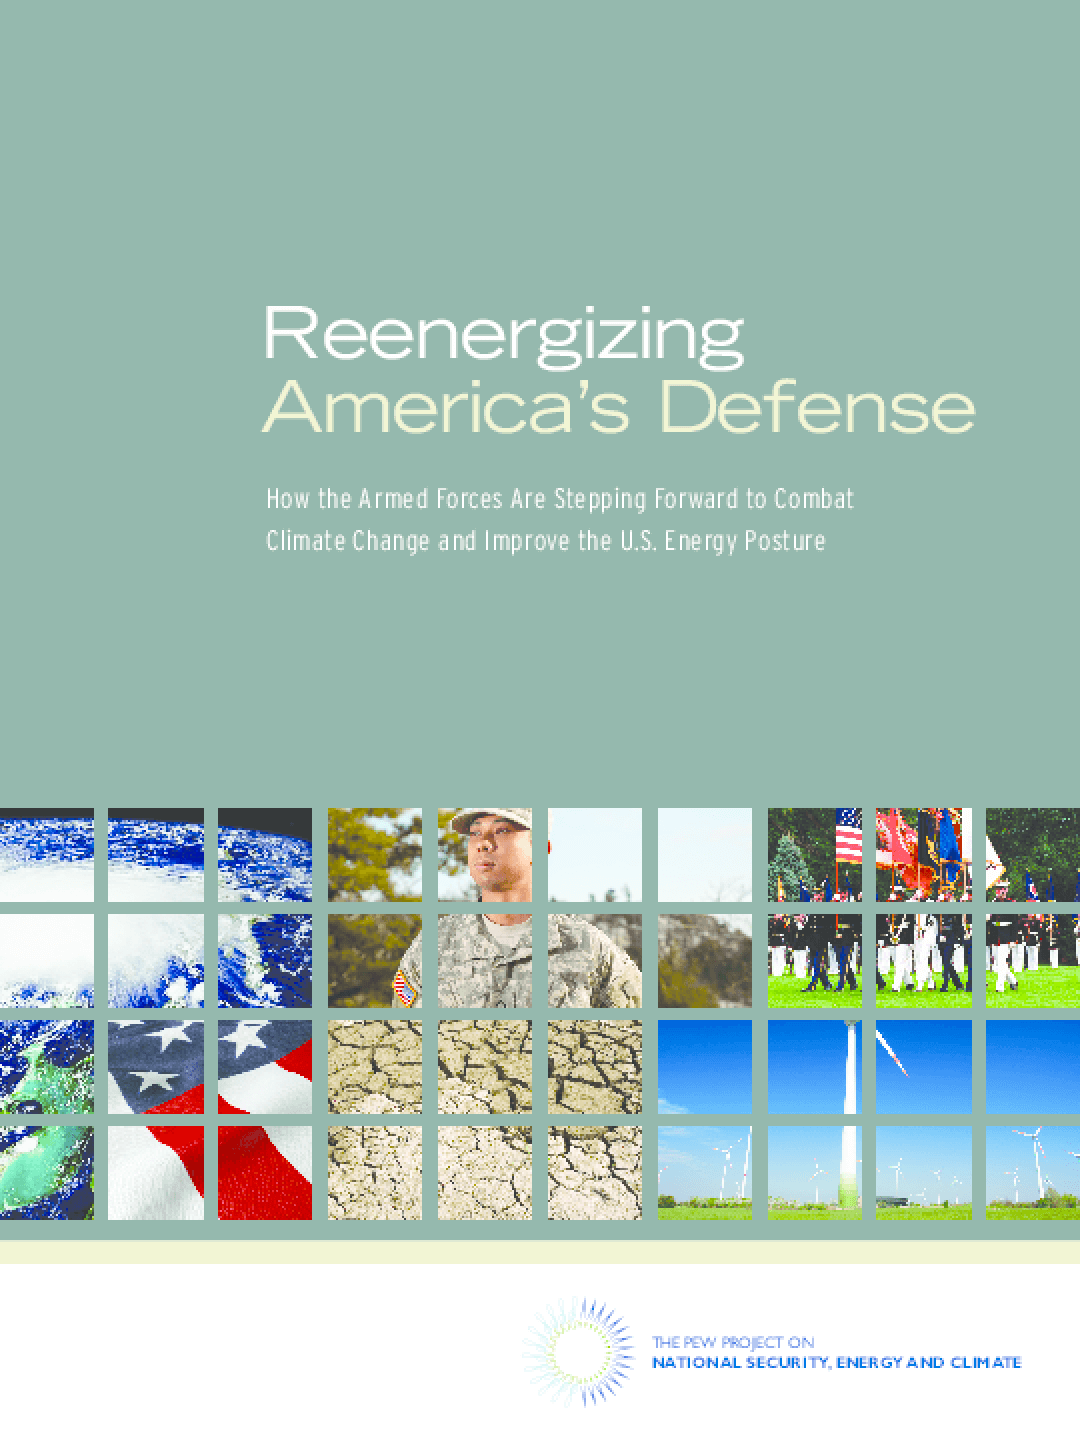 Reenergizing America's Defense: How the Armed Forces Are Stepping Forward to Combat Climate Change and Improve the U.S. Energy Posture